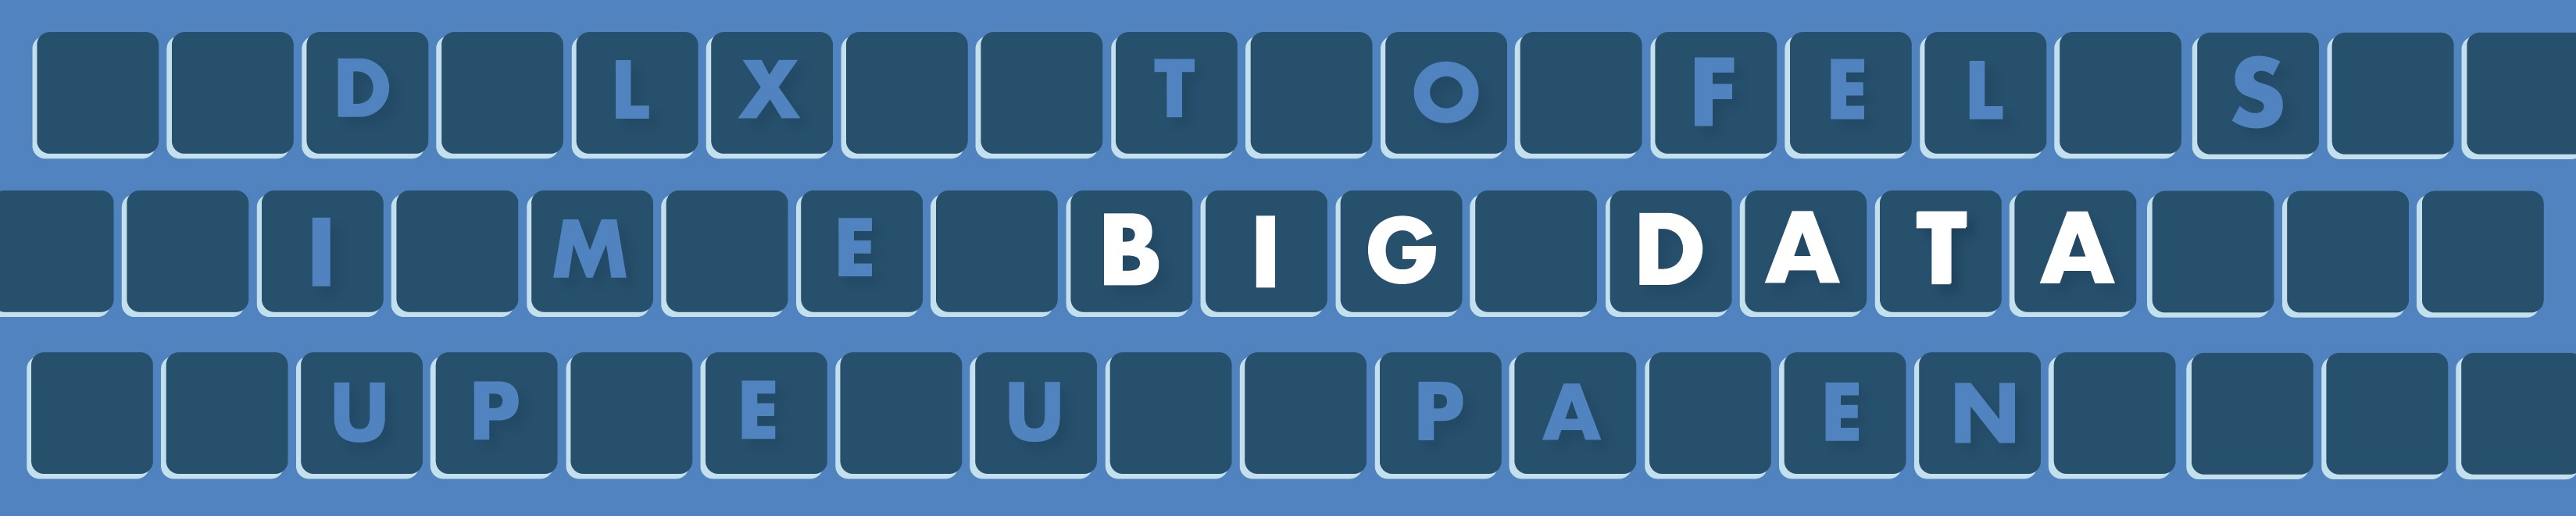 Blog_BigDataTerms_Letters-2